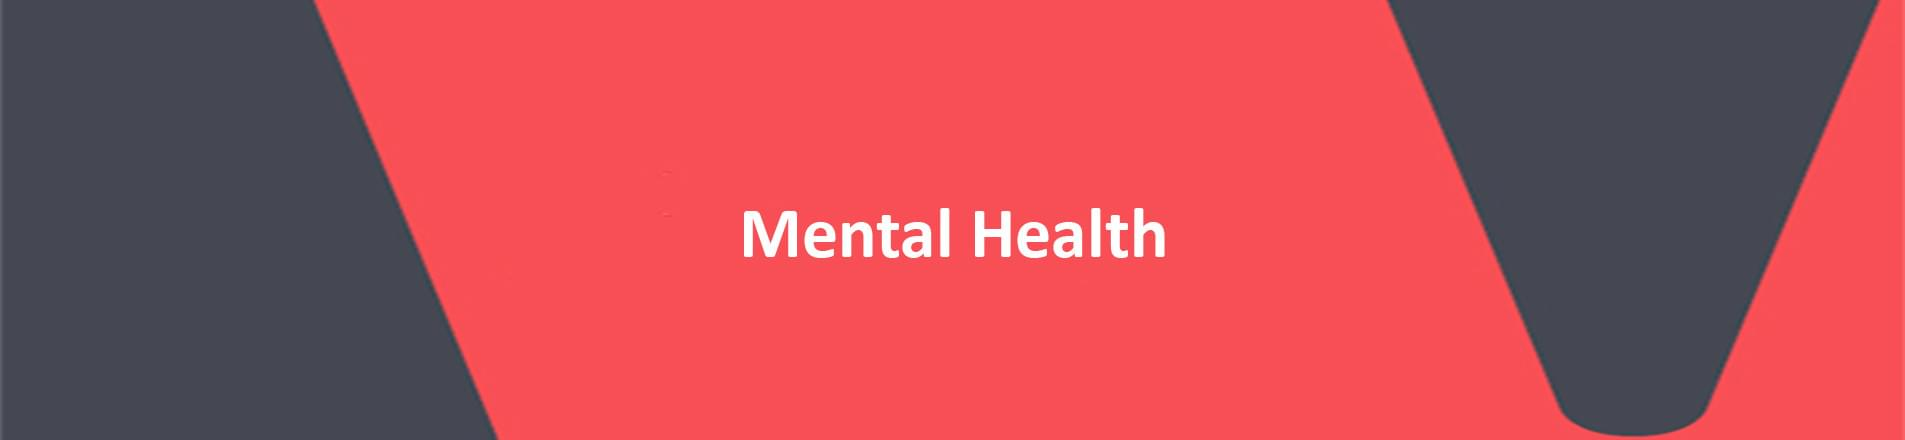 The words Mental Health in white on a red VERCIDA branded background